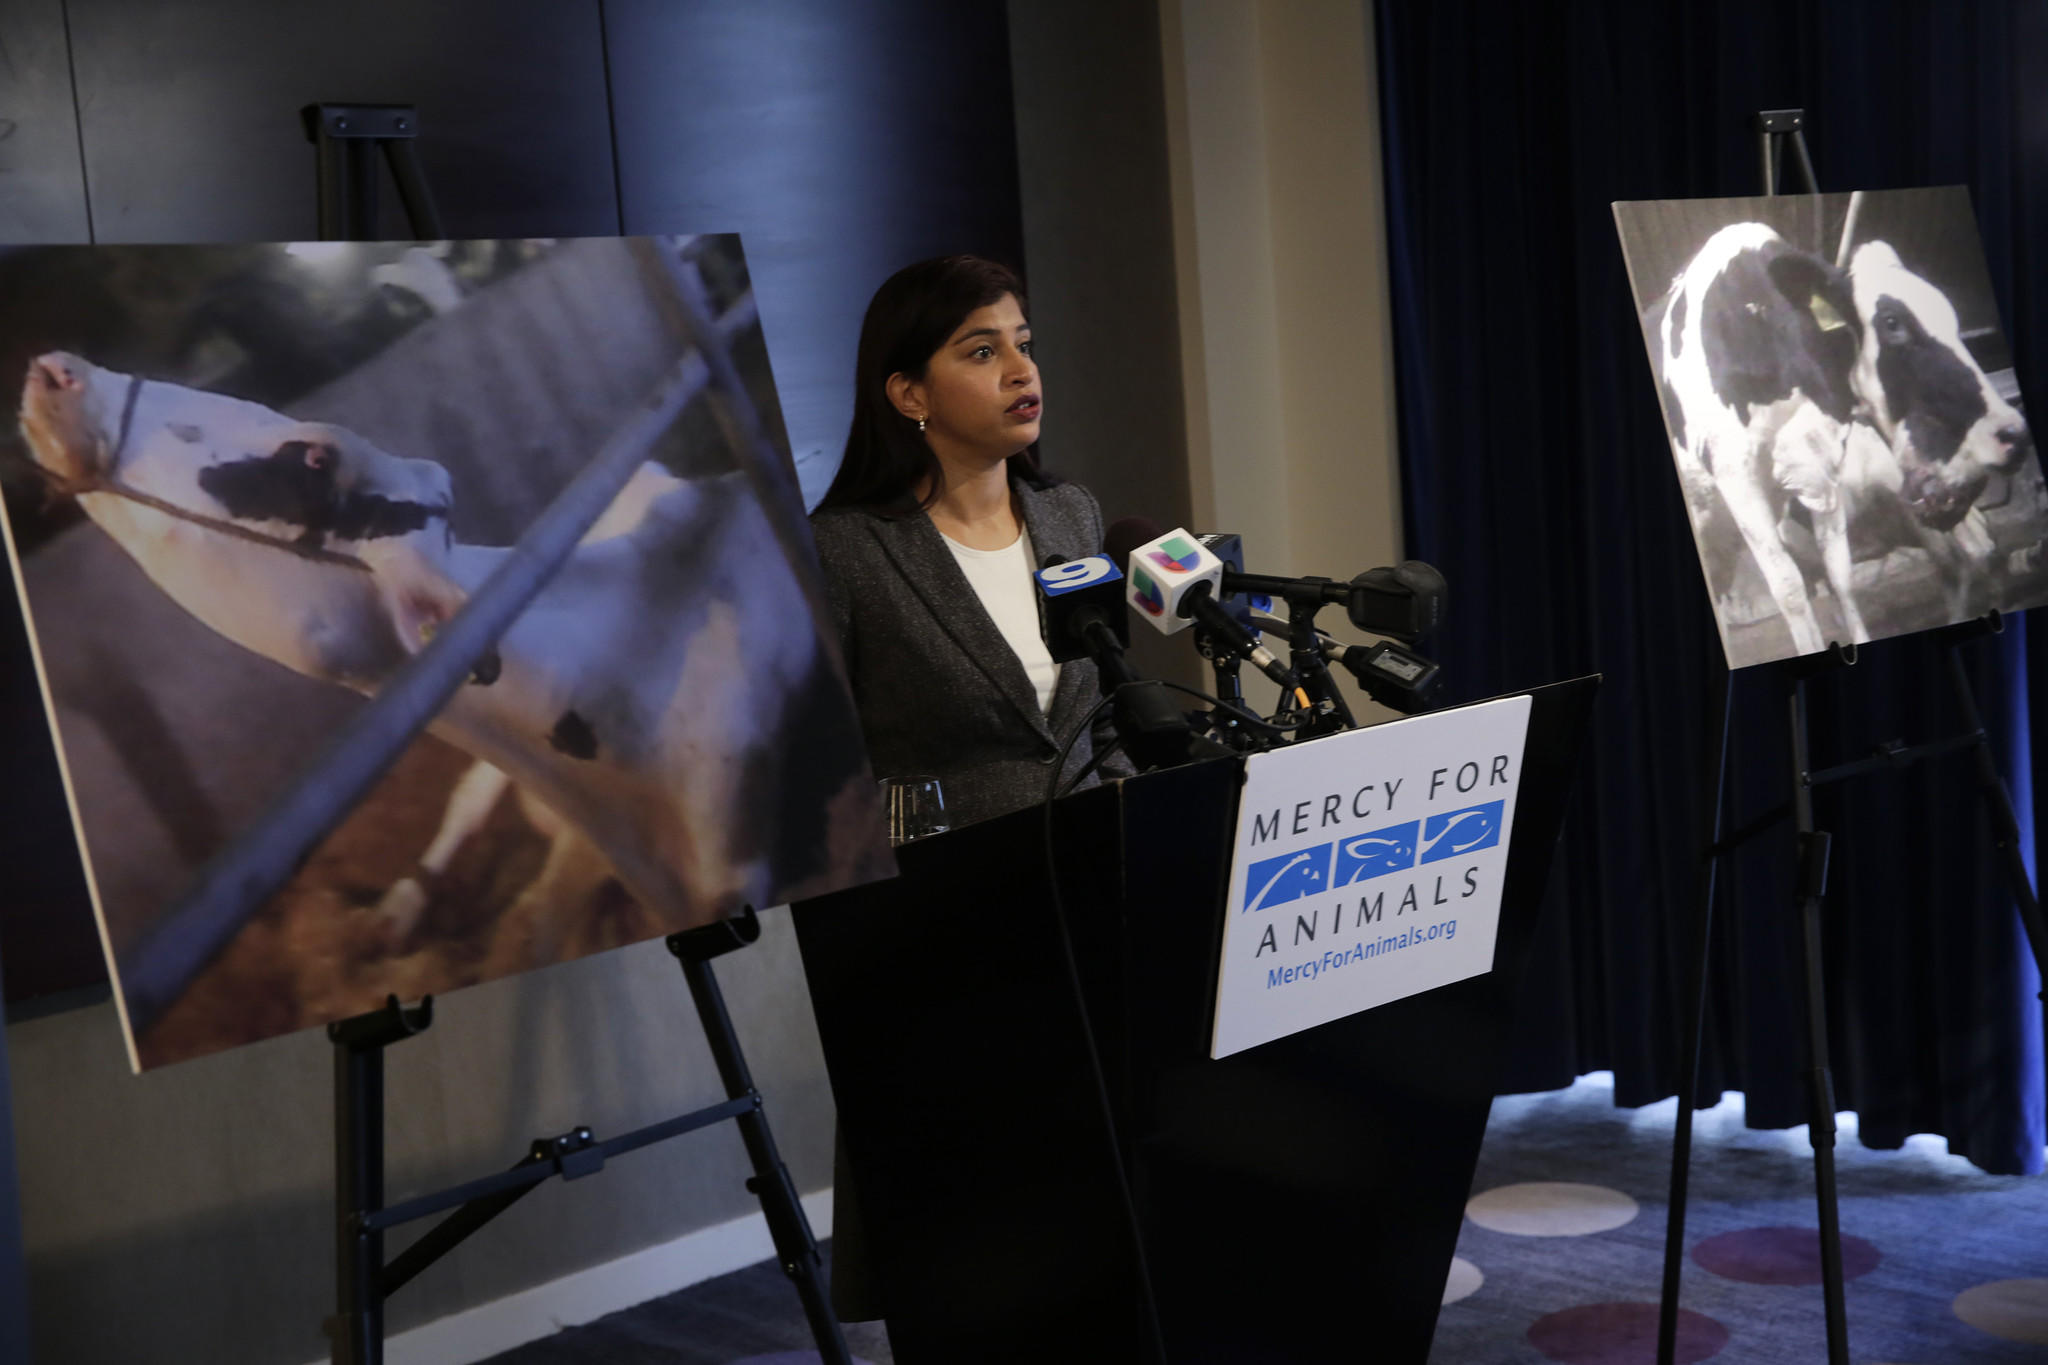 Mercy For Animals general counsel Vandhana Bala releases a hidden-camera video during a press conference showing animal abuse at Wiese Brothers Farms in Greenleaf, Wis. on Dec. 10.